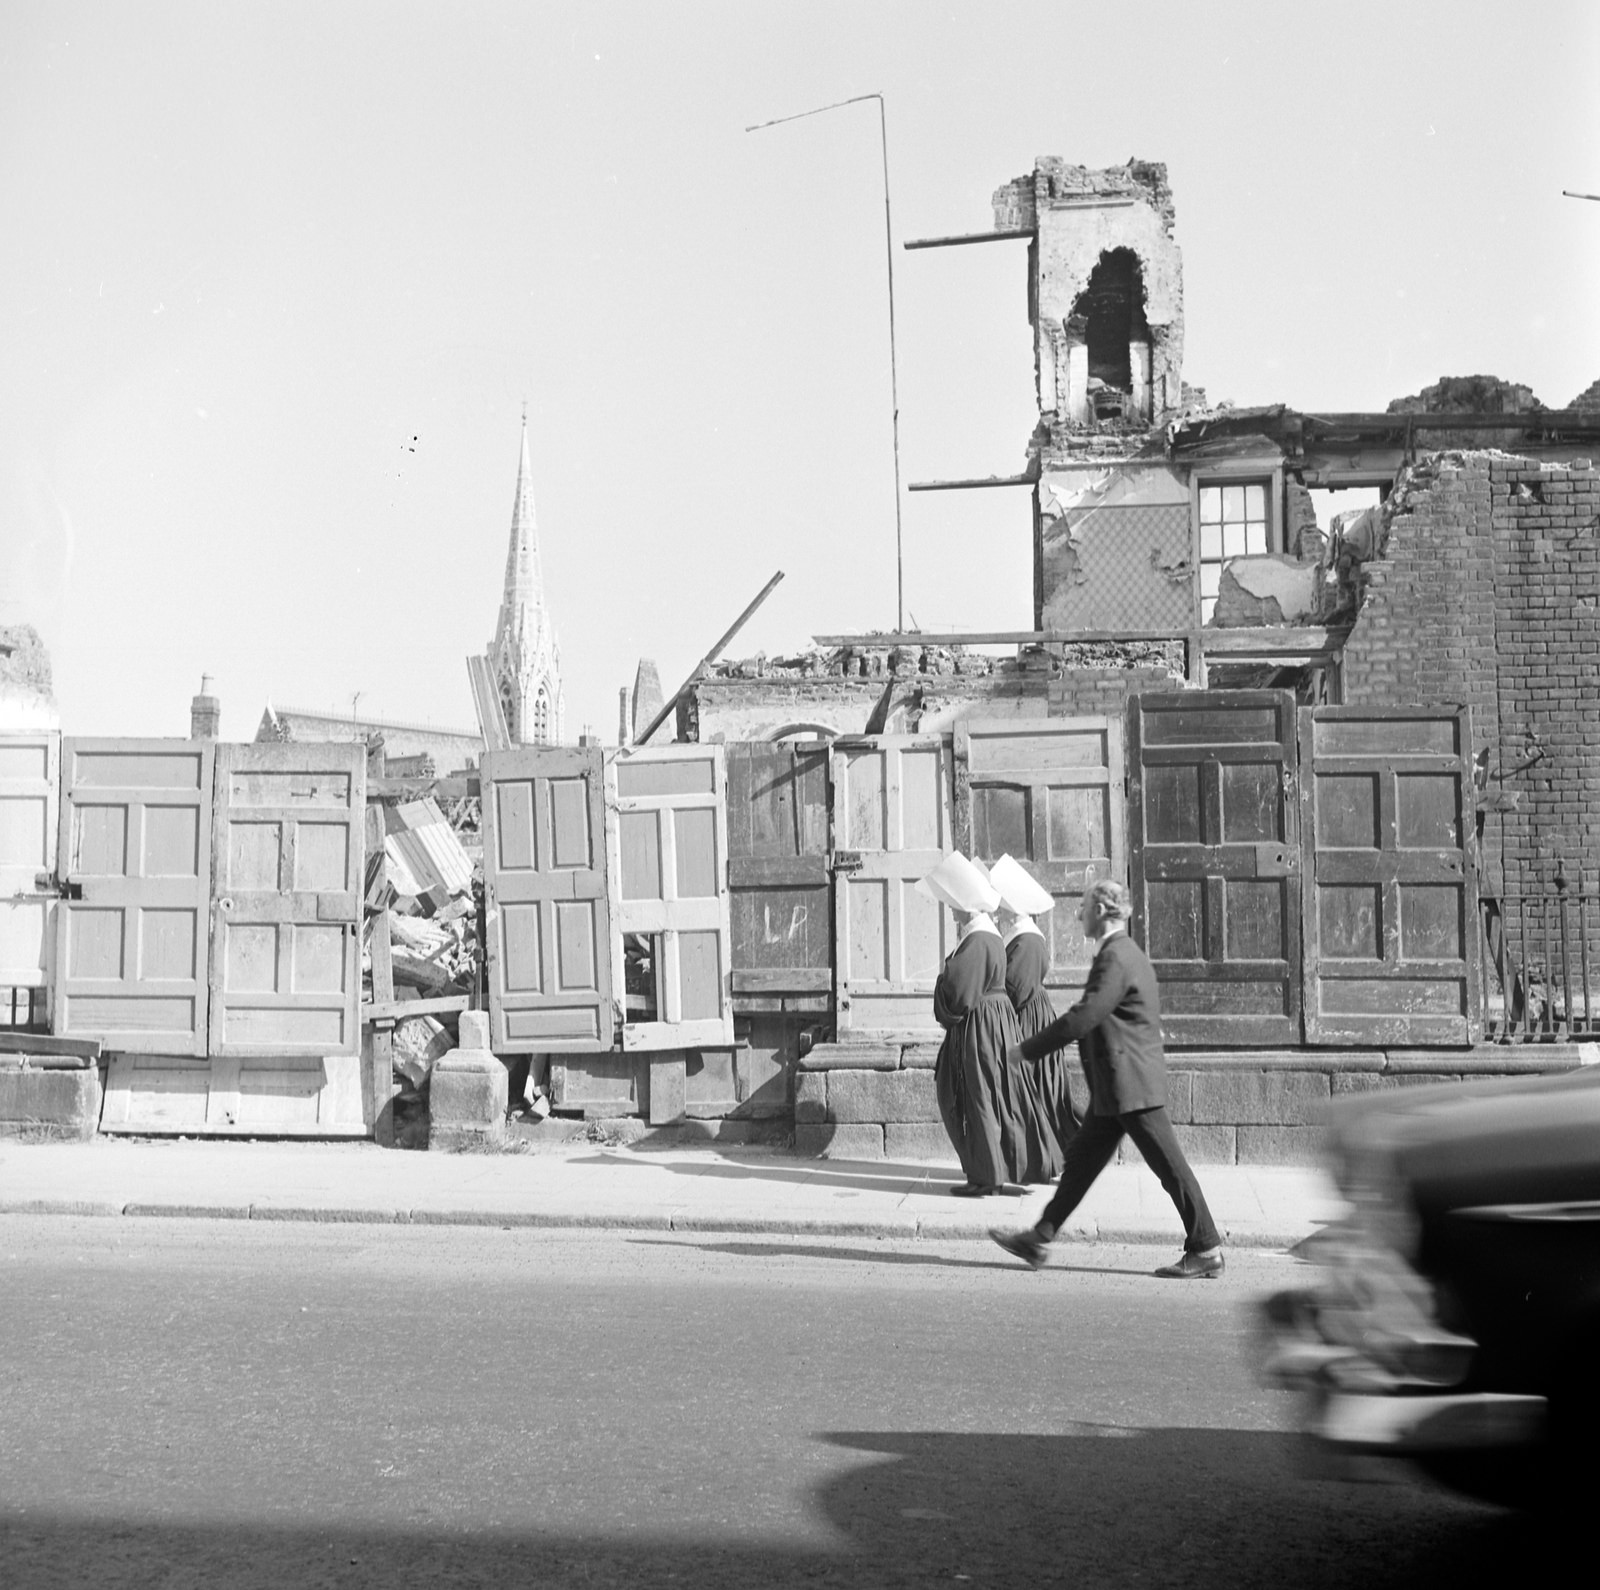 Photograph from the  National Library of Ireland : A more modern shot with many signals of times past! The makeshift hoarding versus todays mandatory fencing and most of all those nuns with those enormous headpieces on display. With thanks to O Mac and sharon.corbet we know that this was likely a shot of the much debated demolition works at Dorset Street on the northside during the summer of 1964. Photographer: Elinor or Reginald Wiltshire. Collection: Wiltshire Photographic Collection.